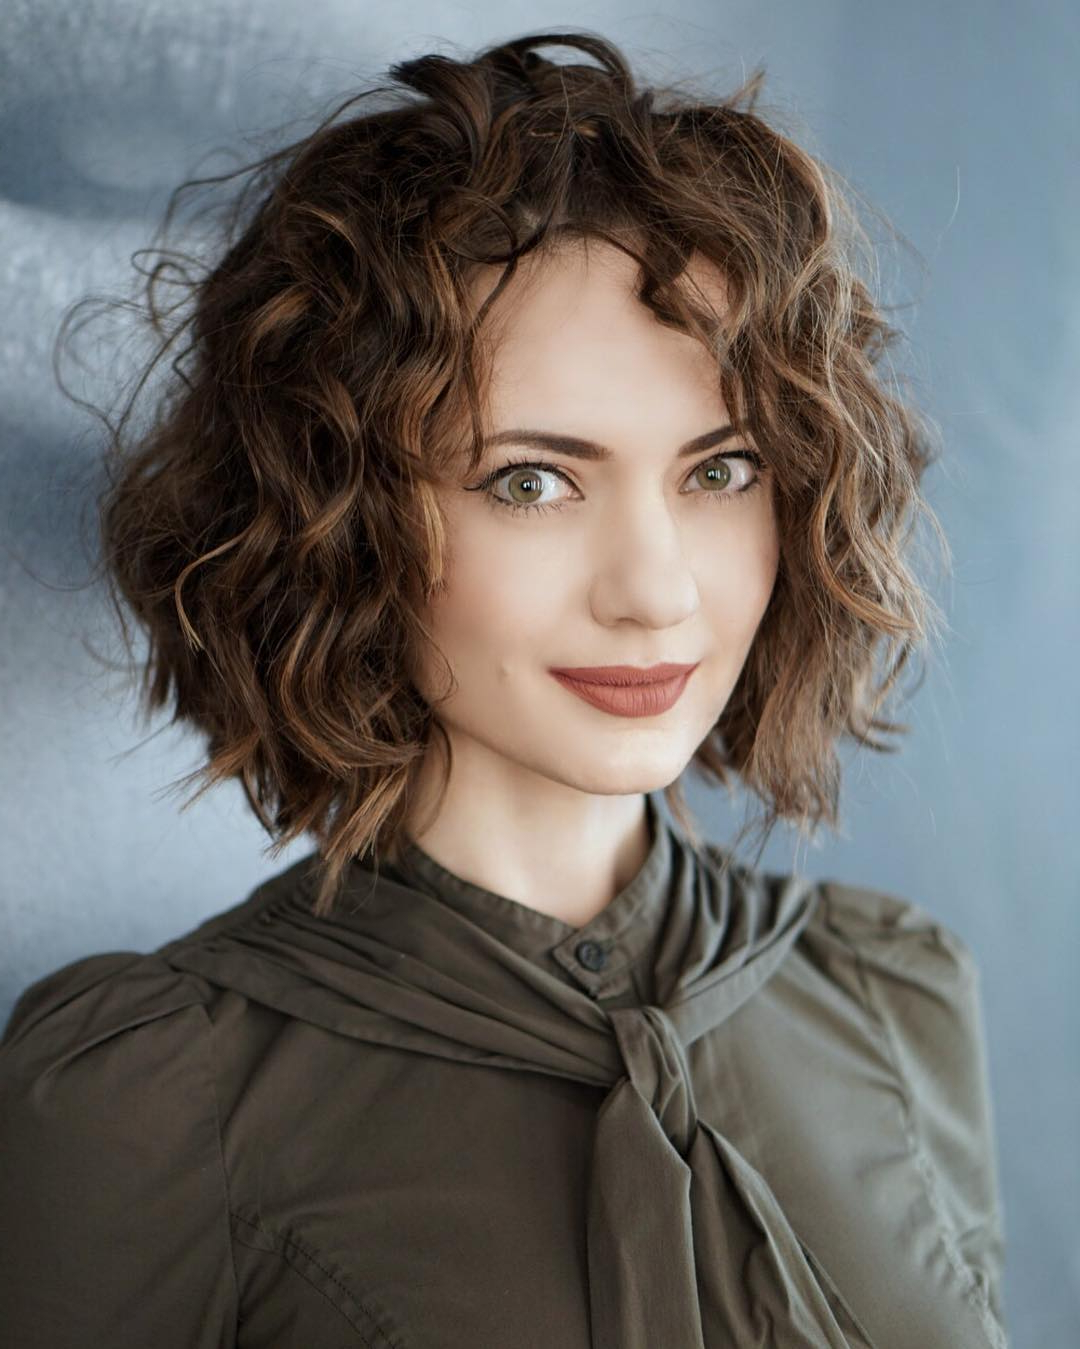 38 Super Cute Ways To Curl Your Bob – Popular Haircuts For Women 2017 Throughout Cute Curly Bob Hairstyles (View 10 of 25)